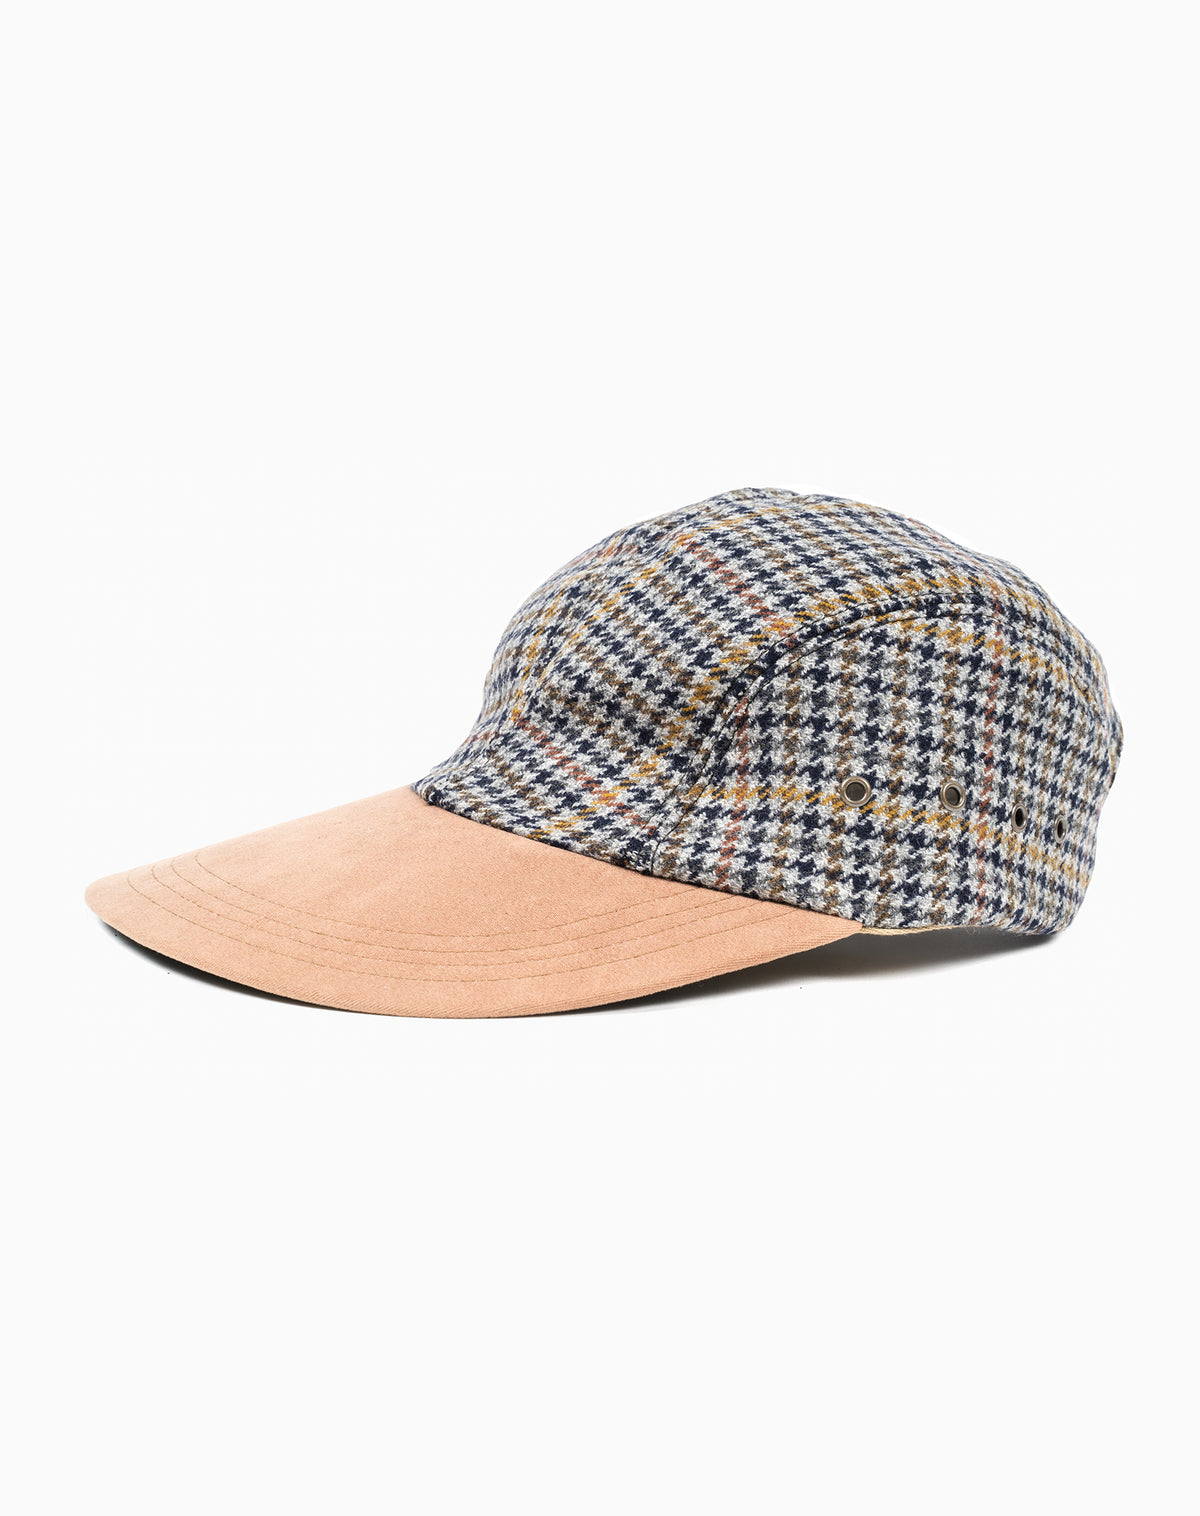 Swordfish in Grey Houndstooth Wool with Suede Brim